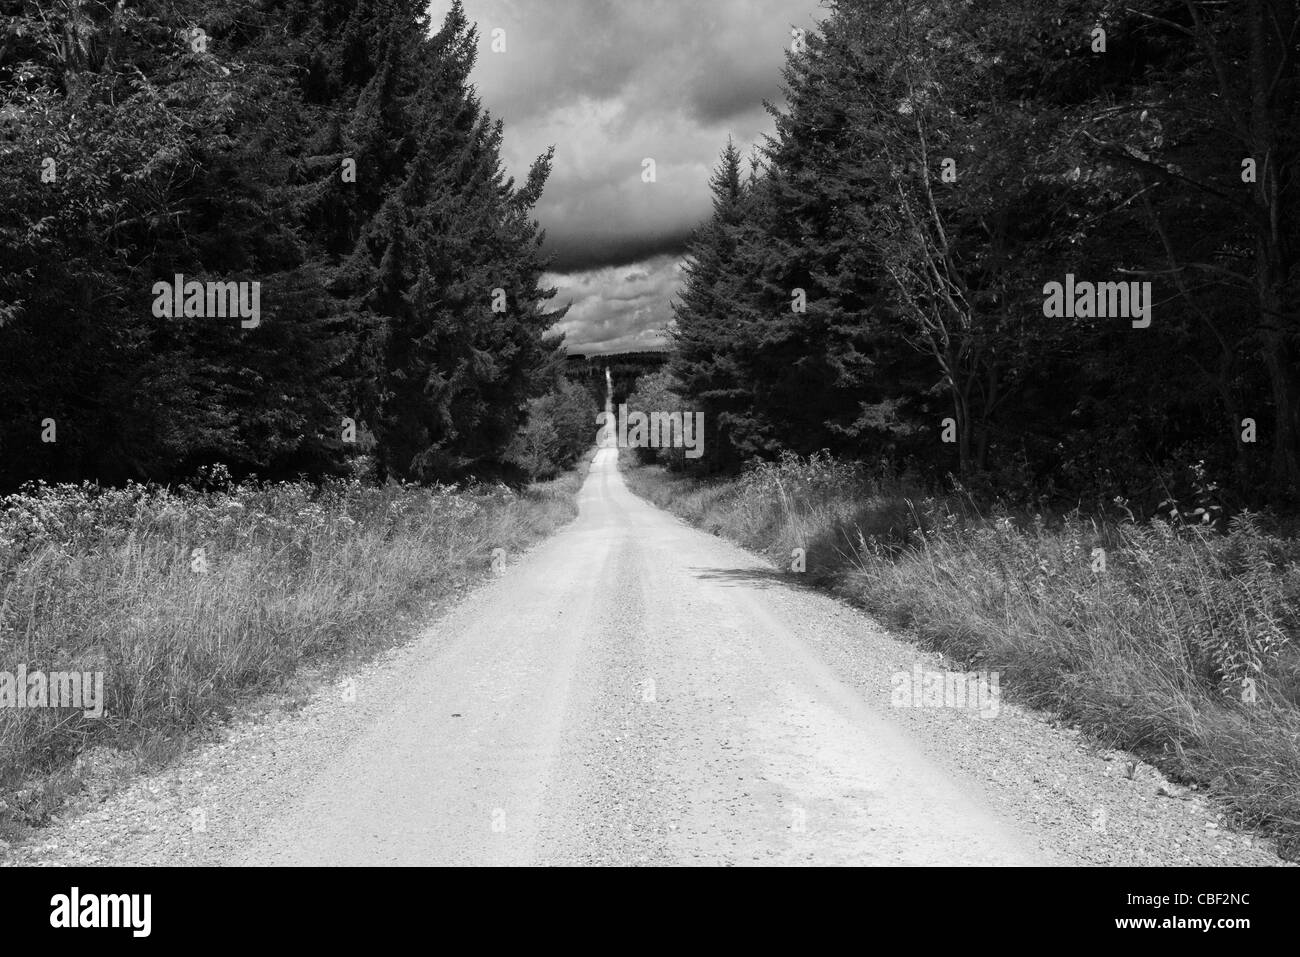 A nearly deserted dirt road running along the eastern boundary of the Dolly Sods Wilderness Area in West Virginia. - Stock Image